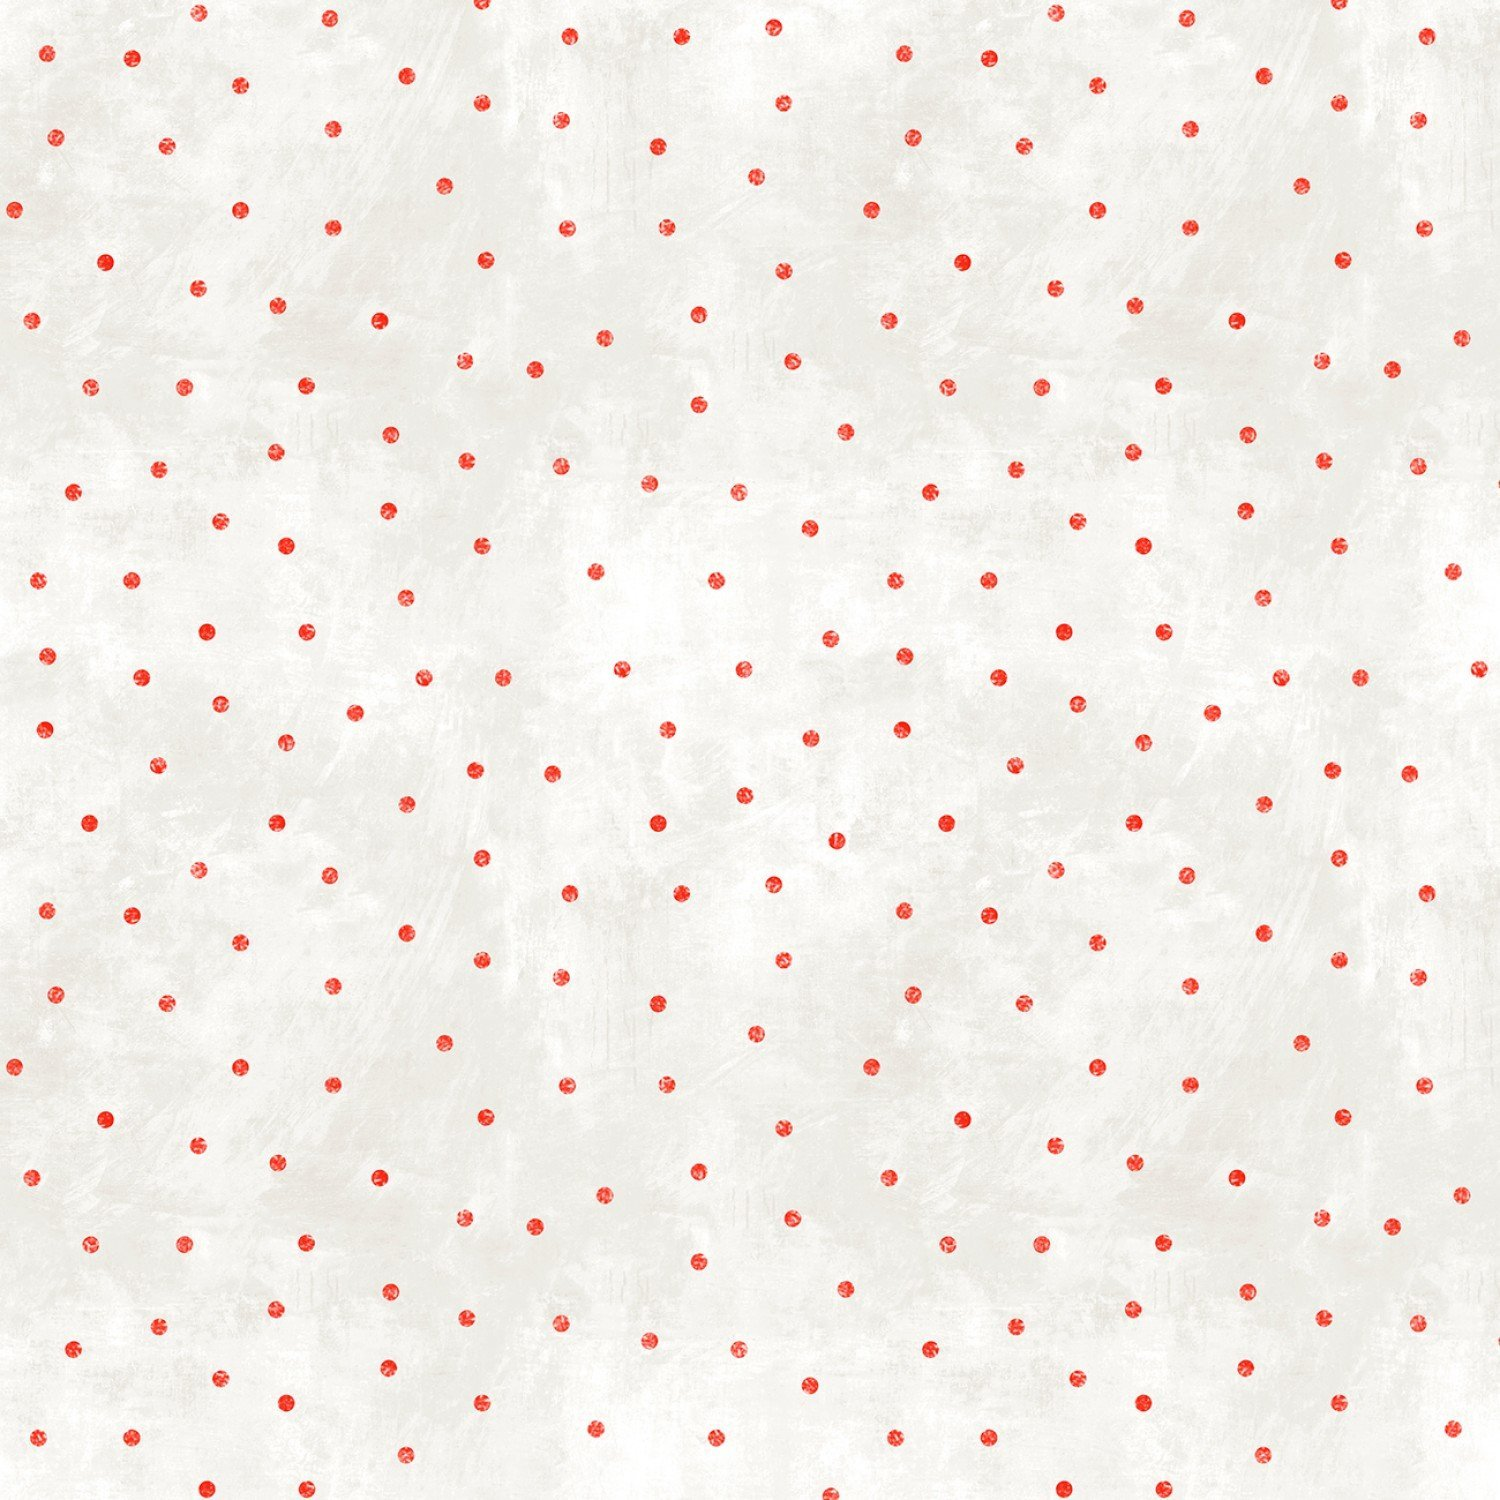 Time For Hot Cocoa - Dots 30527-113 White